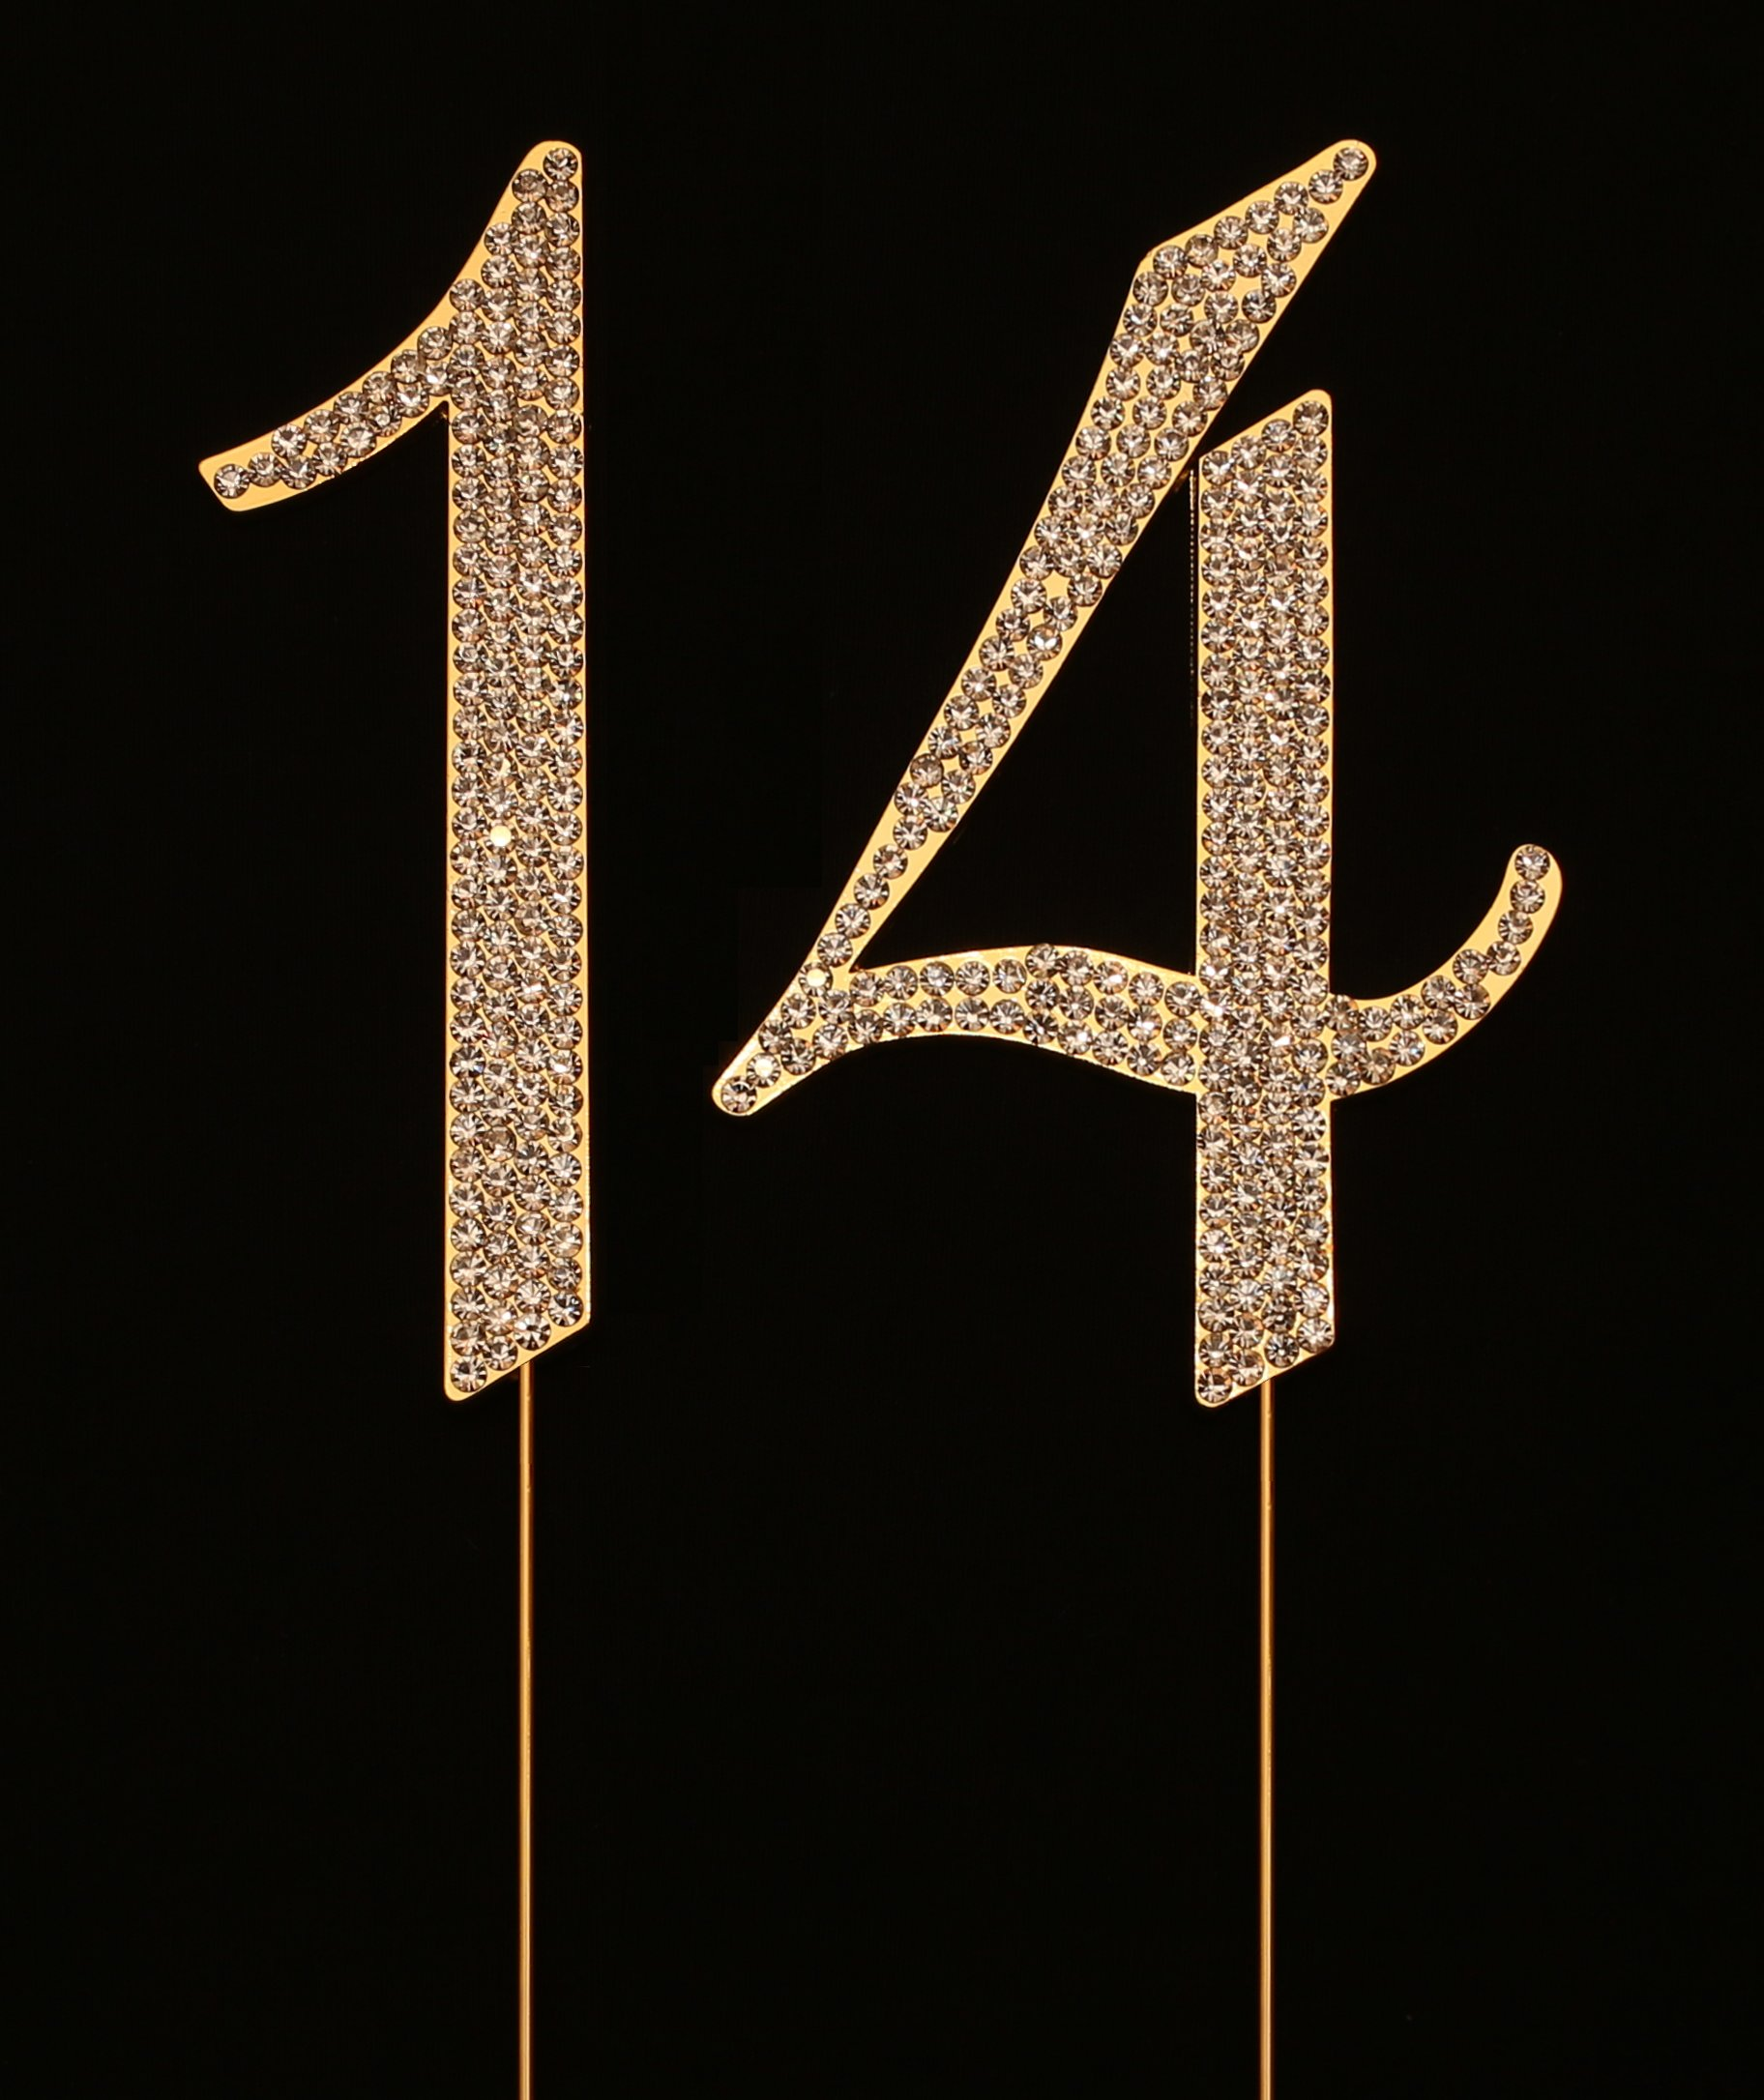 Numbrer 14 for 14th Birthday or Anniversary Cake Topper Party Decoration Supplies, Gold, 4.5 Inches Tall